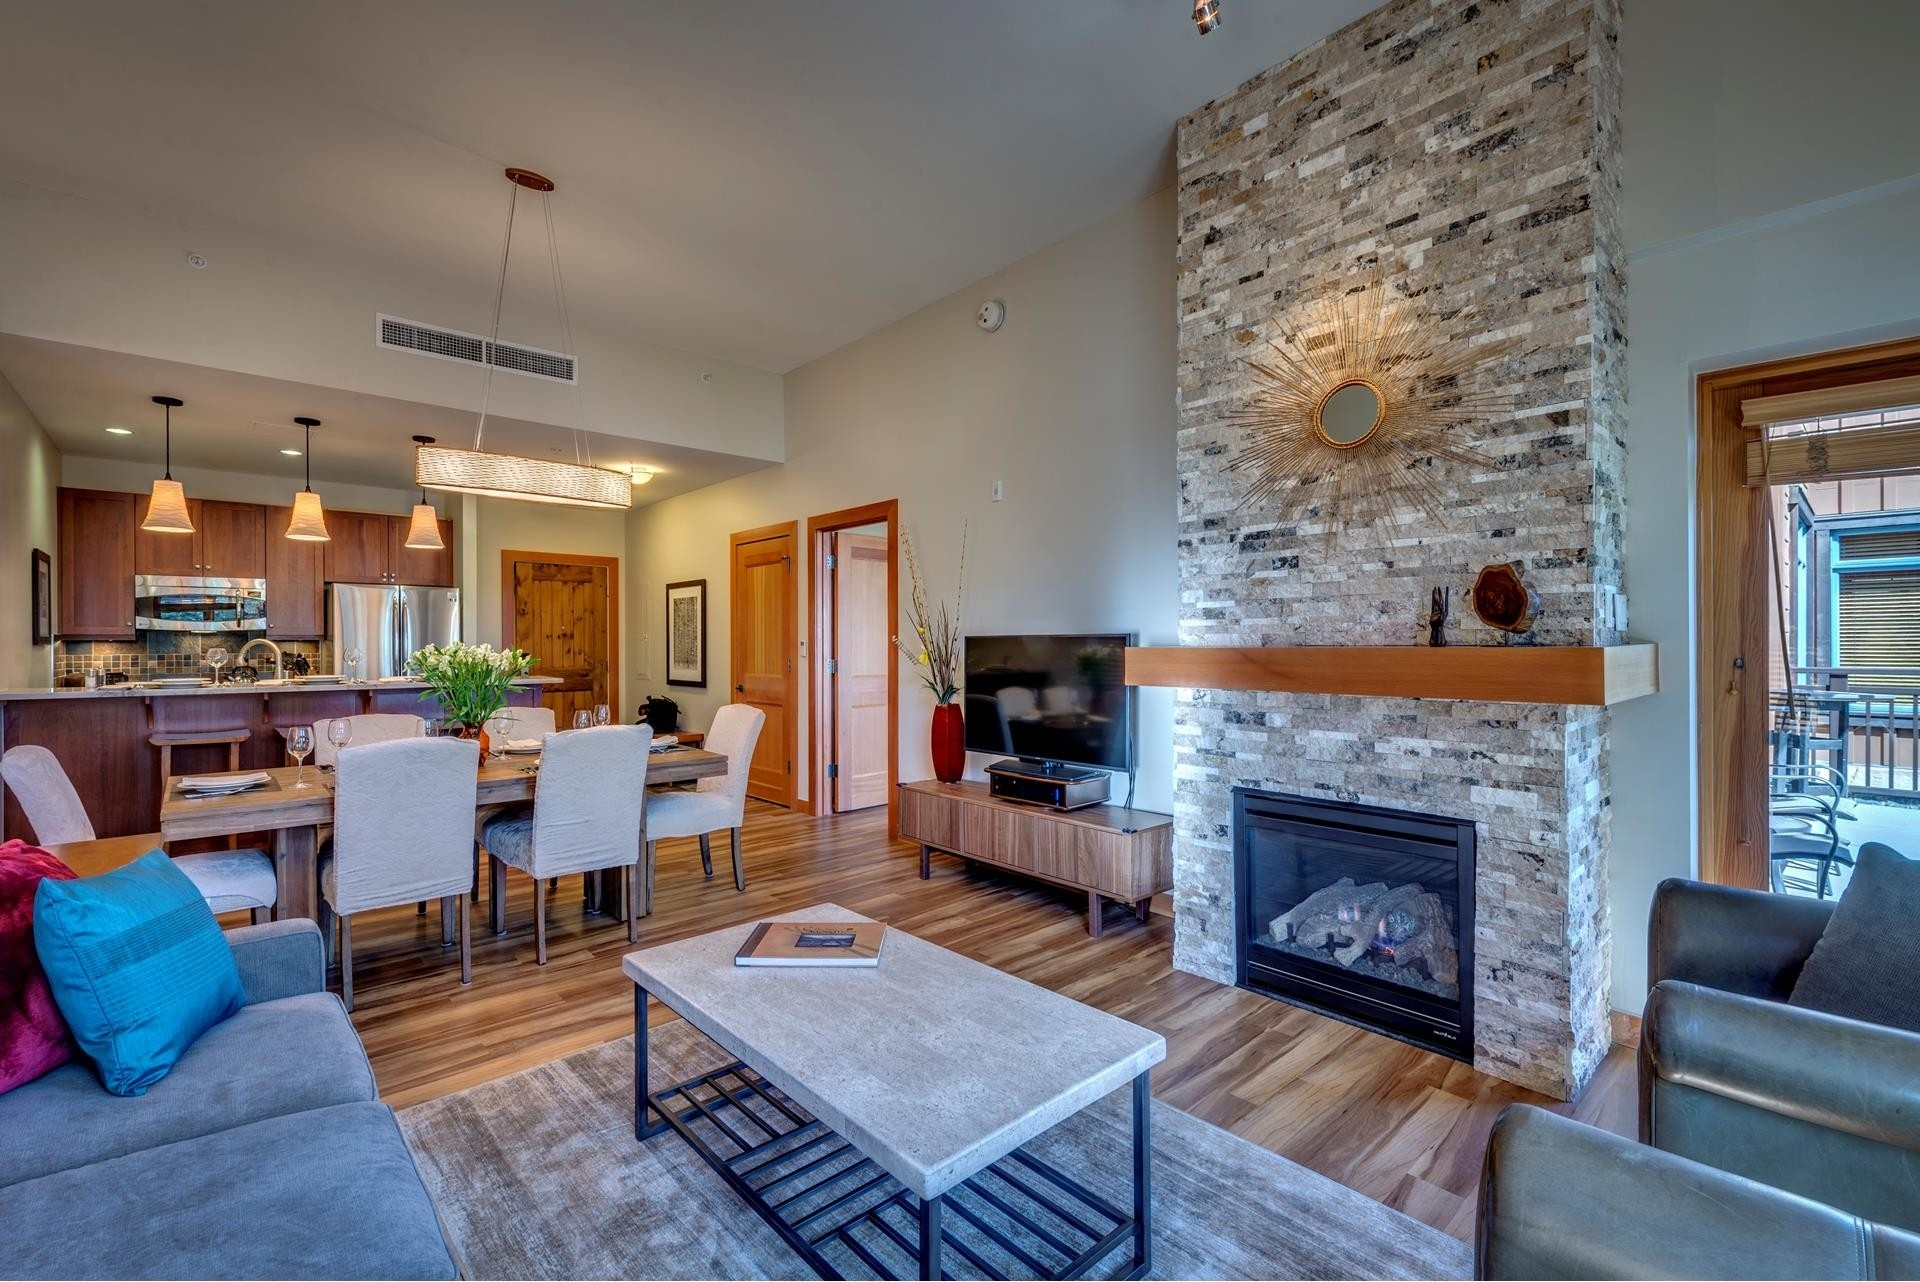 Property à 60 Carriage Way, #3028 Snowmass Village, CO 81615